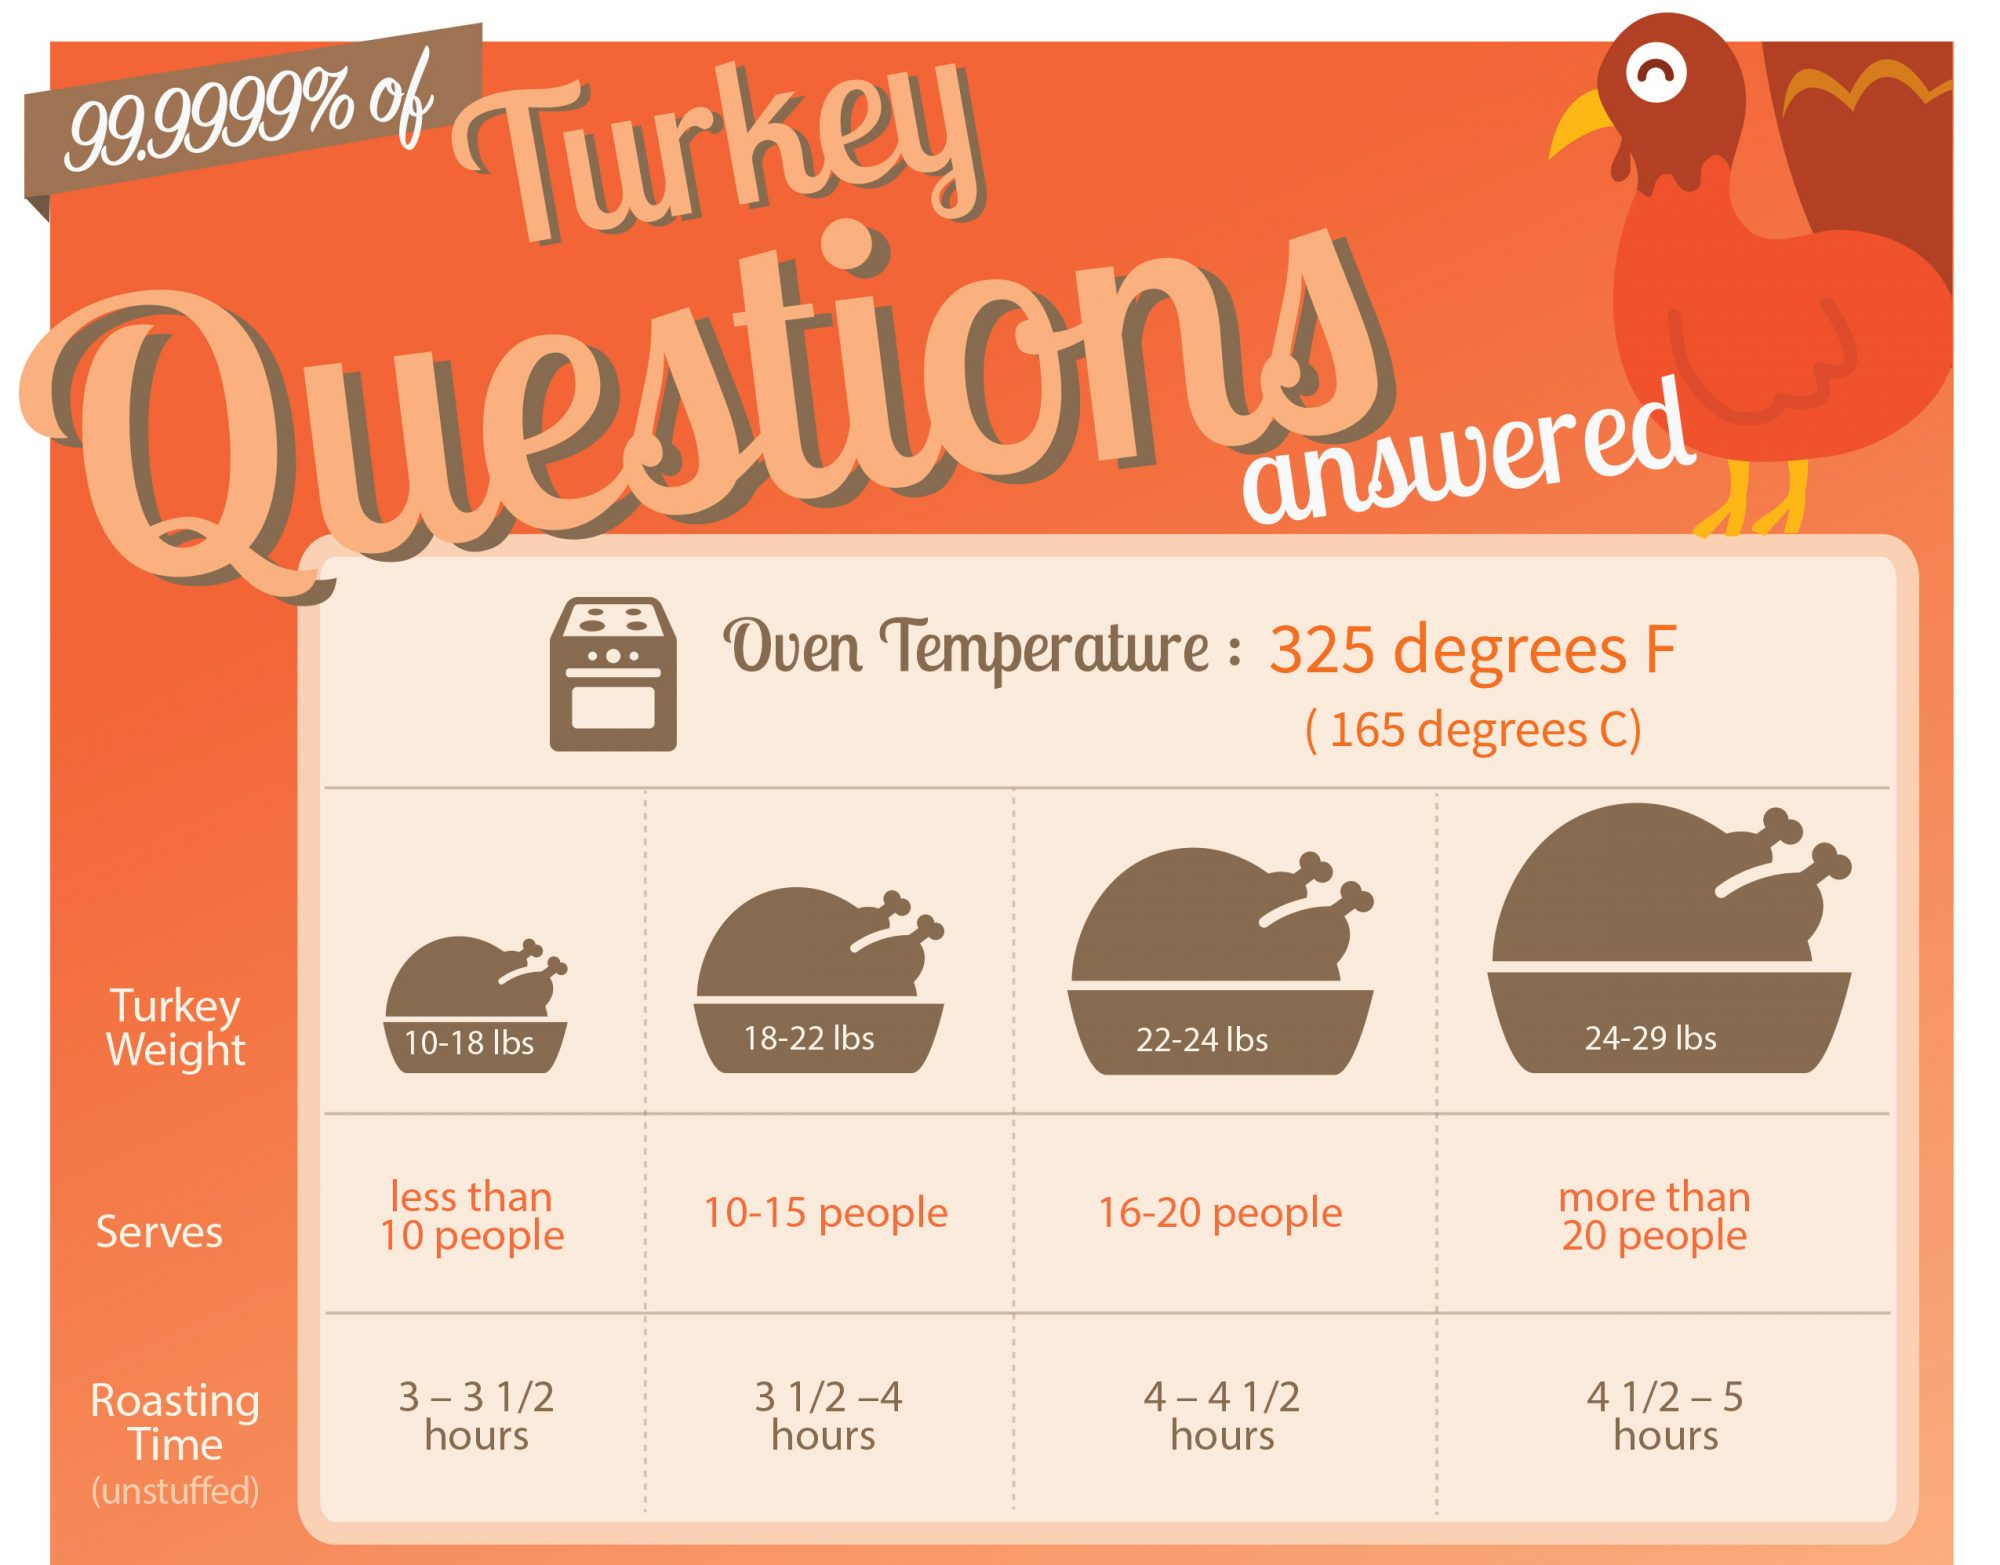 An infographic on how to cook a turkey